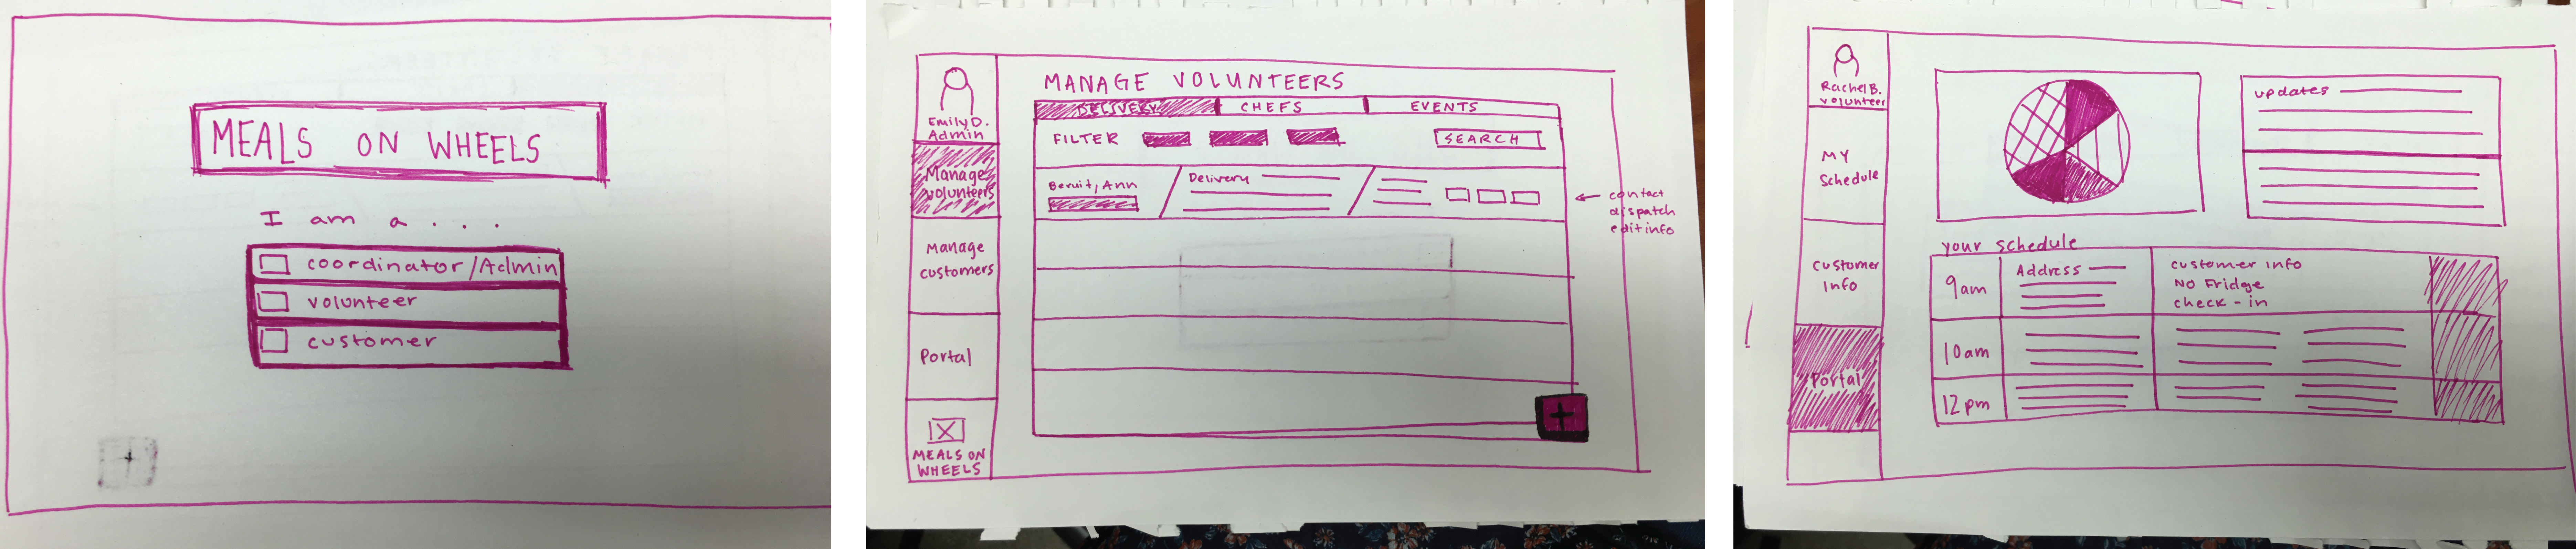 wireframes-mealsonwheels-01